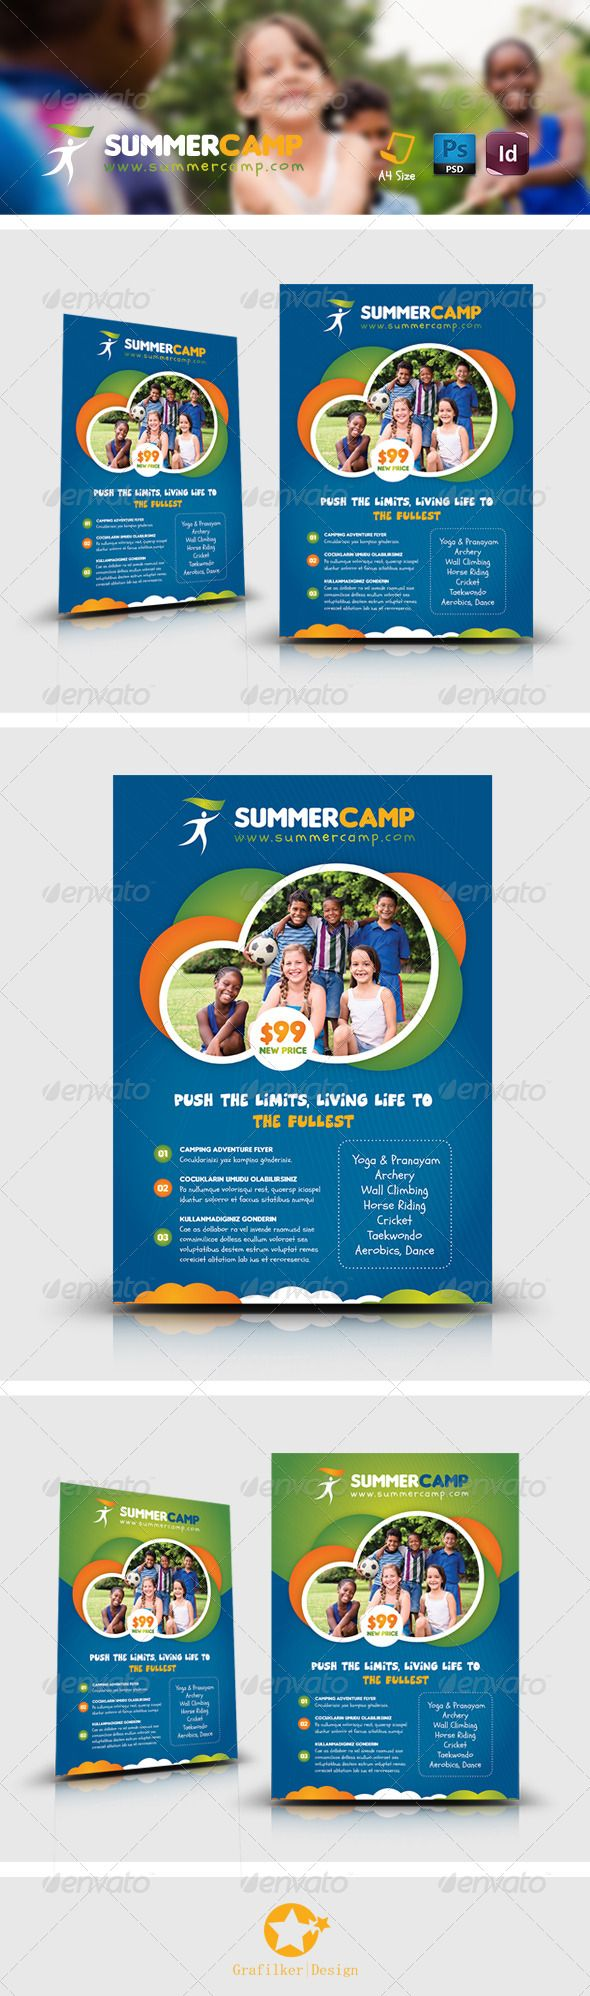 Summer Camp Flyer Templates, Rafting, adrenaline, adventure, atv, bambi jumping, camp, camping, child, climbing, excitement, grafilker, holiday, kayaking, kids, nature, parasailing, passion, racing, sand, sea, soccer, speed, sporting, student, summer, sun, surfing, tent, training, weekly